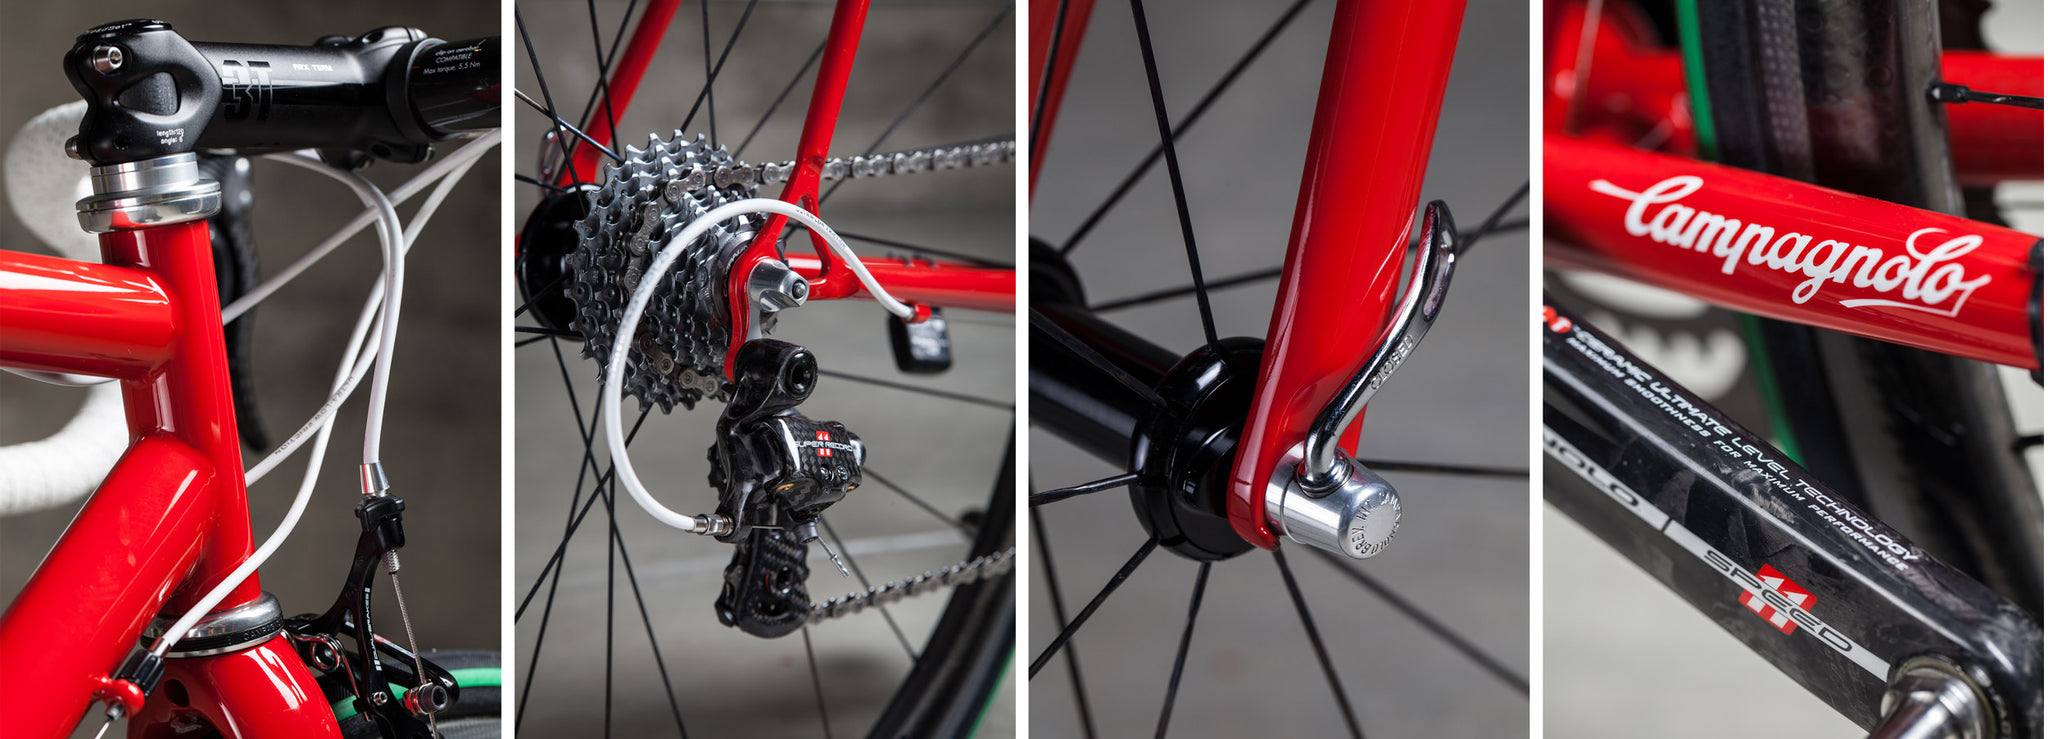 mosaic rs1 campagnolo